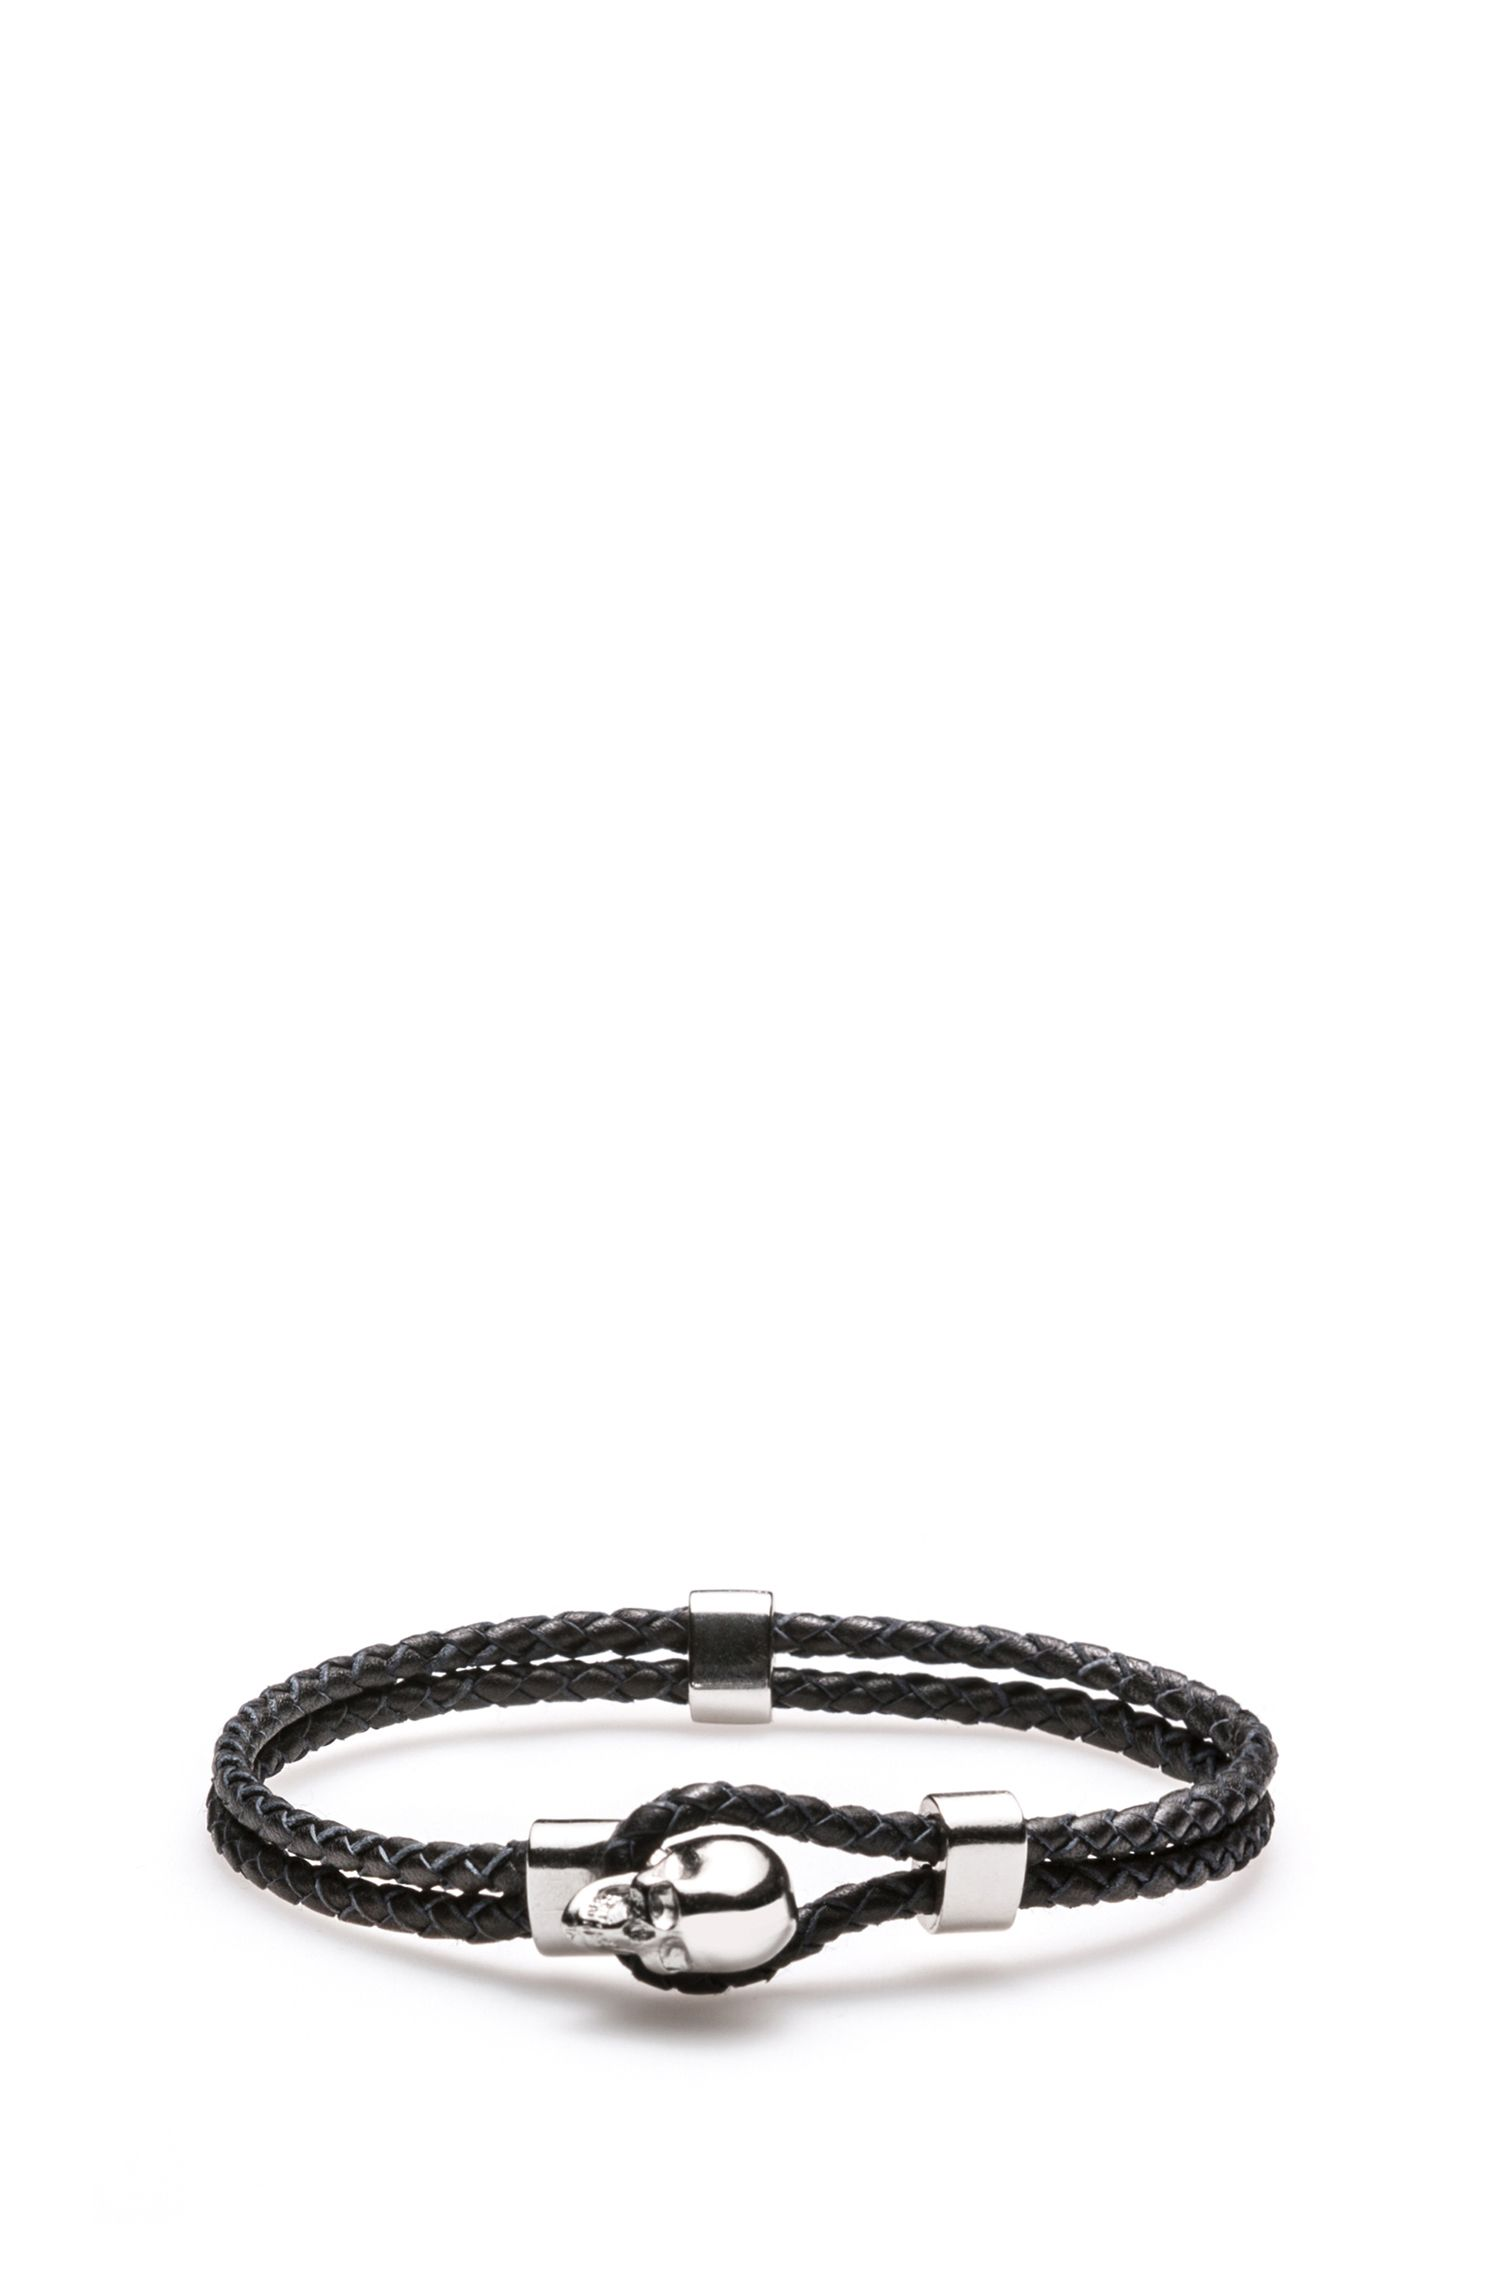 Braided-leather bracelet with skull closure